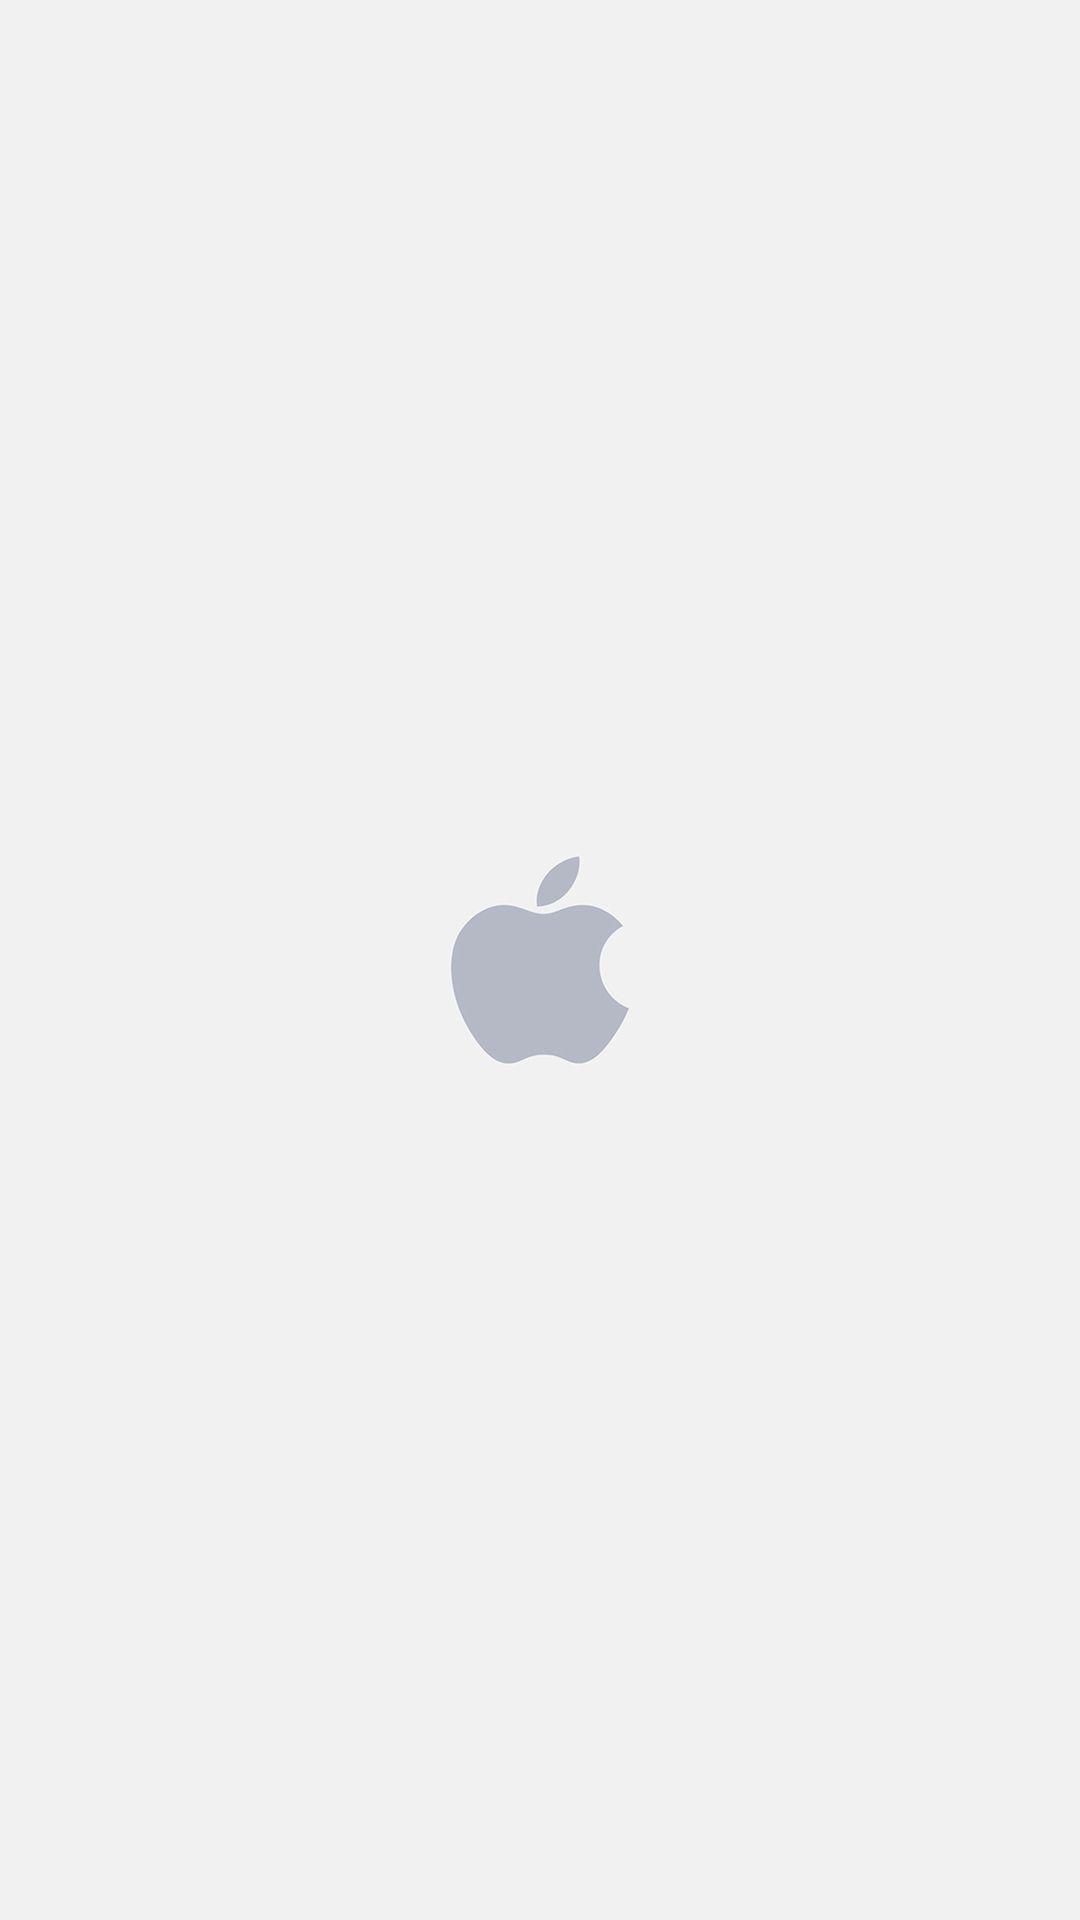 Apple Logo White Art Illustration Iphone  Wallpaper